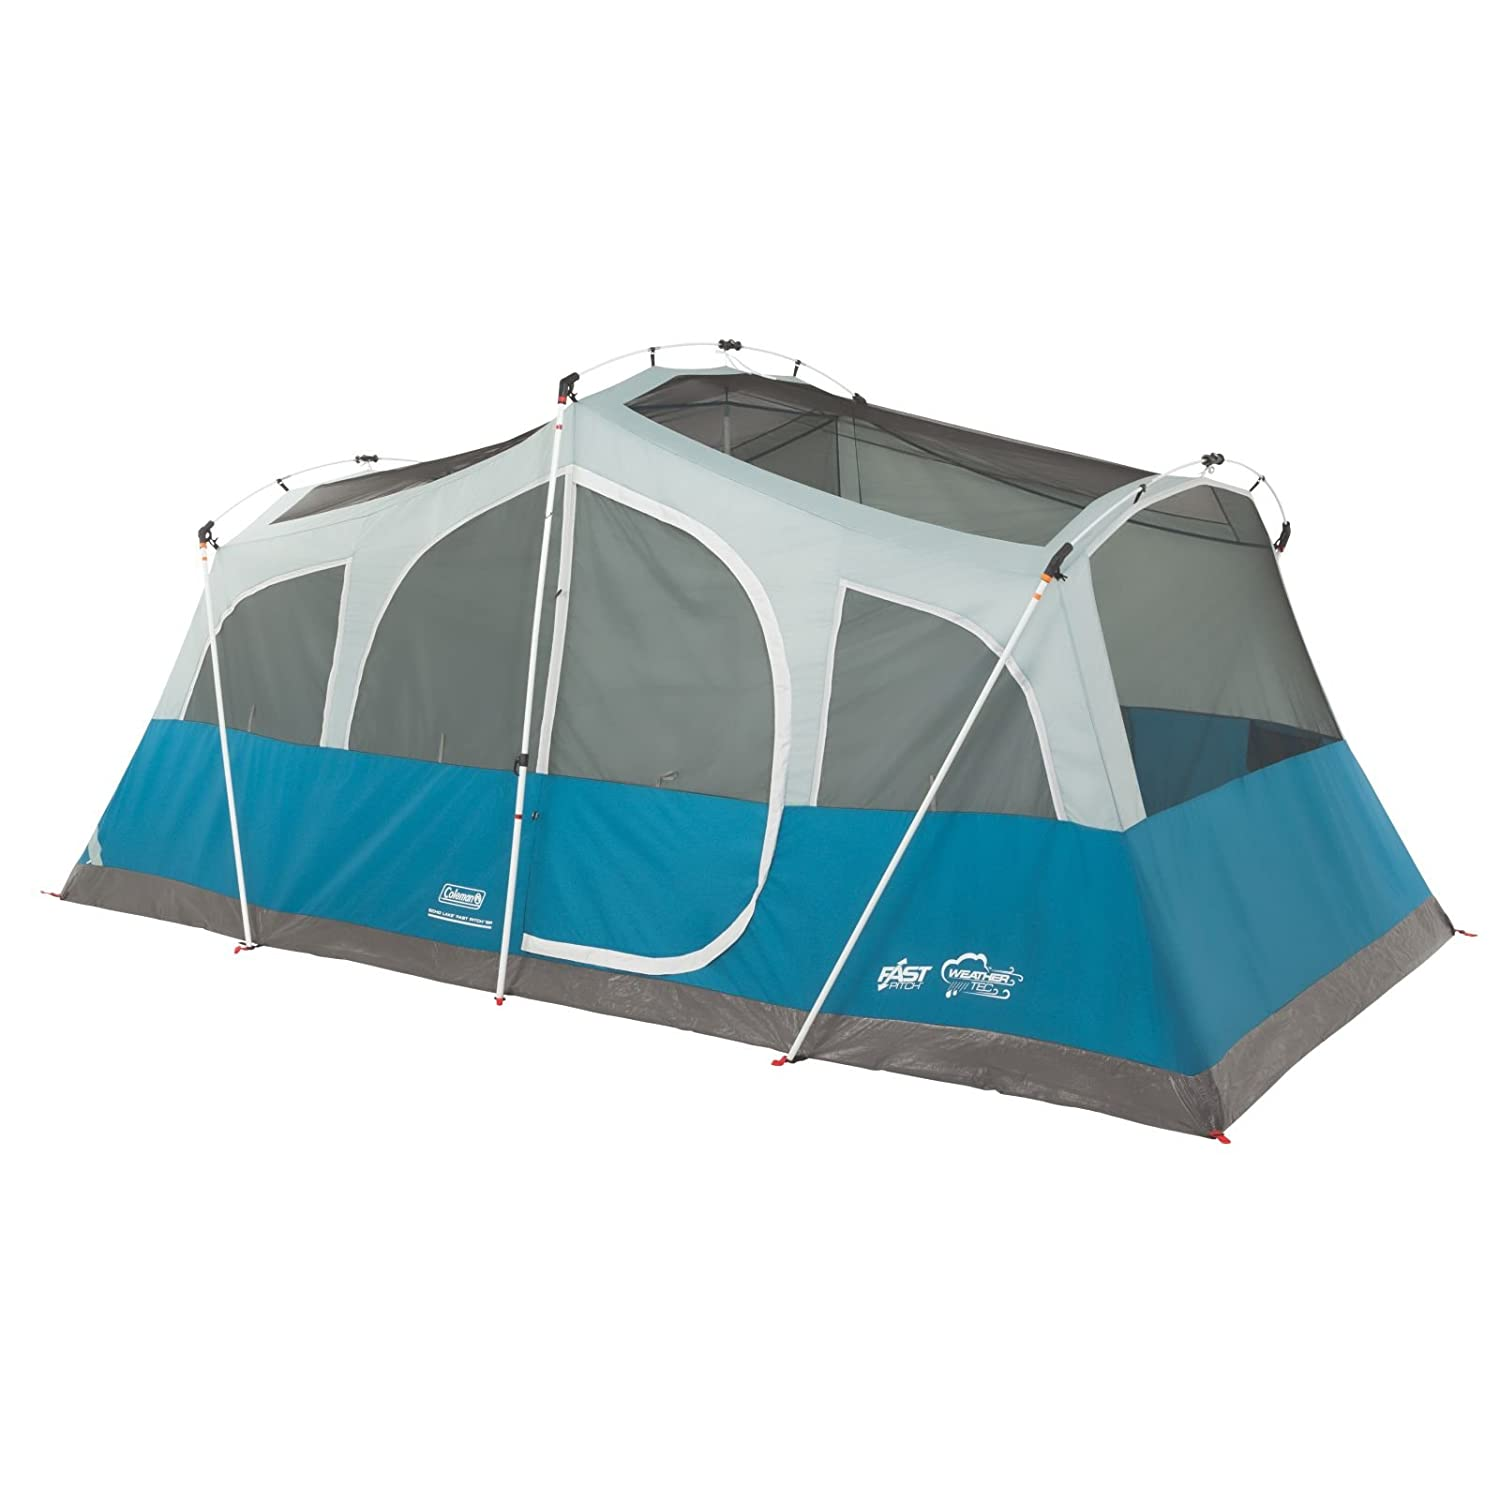 Amazon.com  Coleman Echo Lake 8 Person Fast Pitch Cabin with Cabinets  Sports u0026 Outdoors  sc 1 st  Amazon.com & Amazon.com : Coleman Echo Lake 8 Person Fast Pitch Cabin with ...